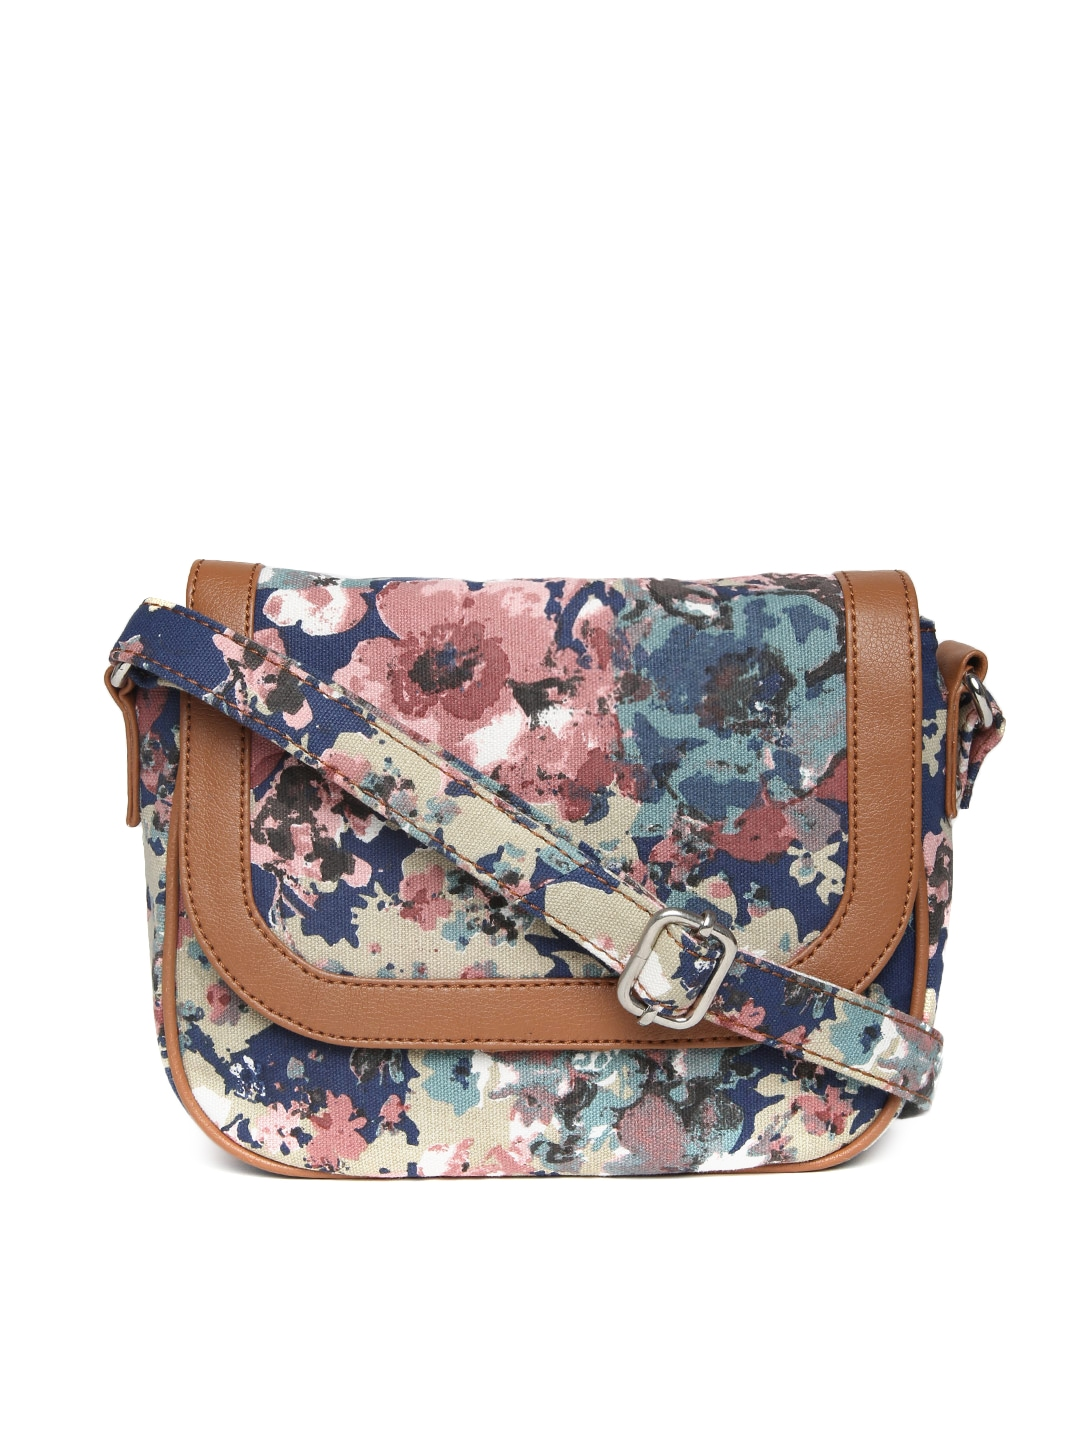 Buy Bata Multicoloured Floral Print Sling Bag - Handbags for Women ...